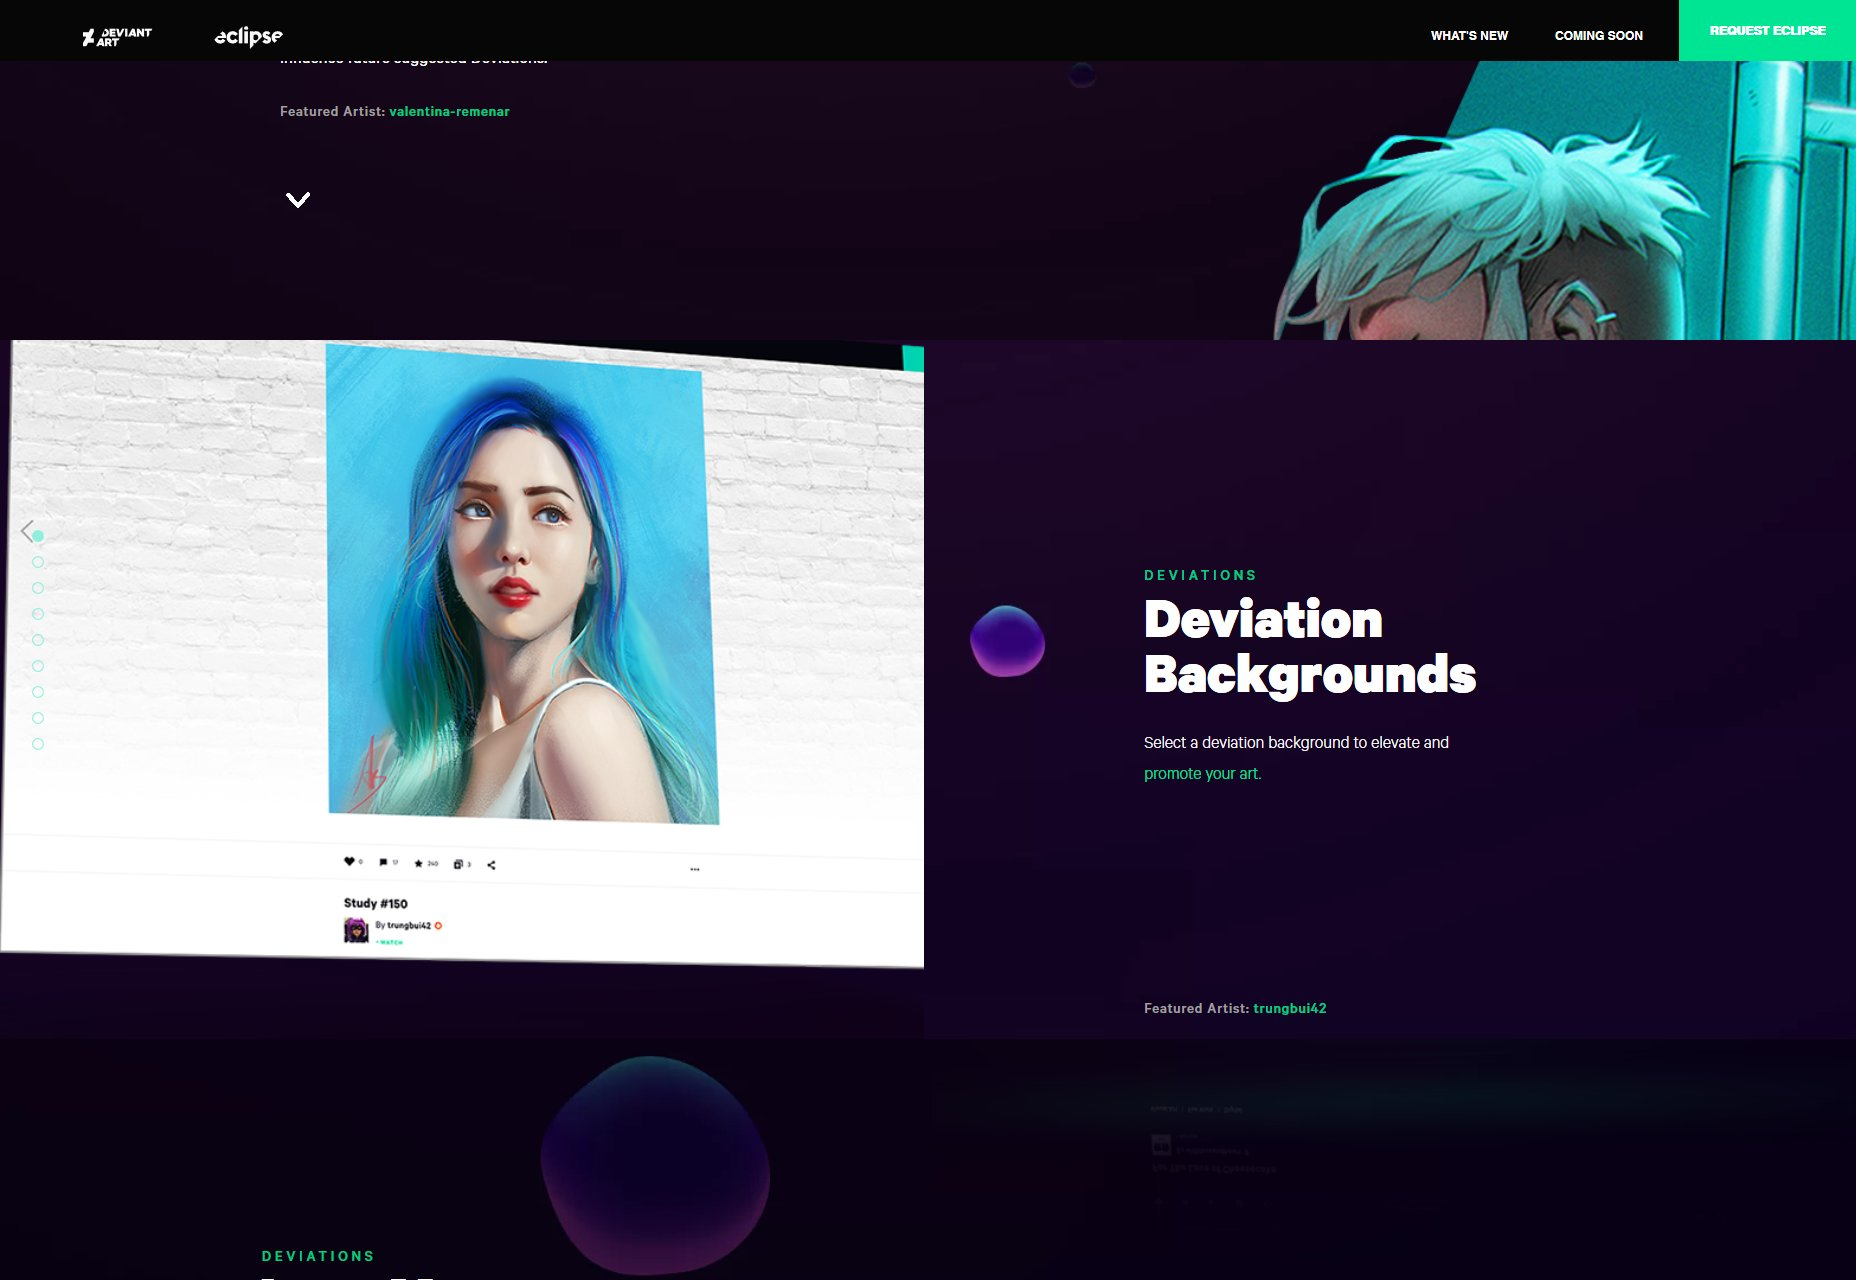 DeviantArt Has a Redesign in Beta